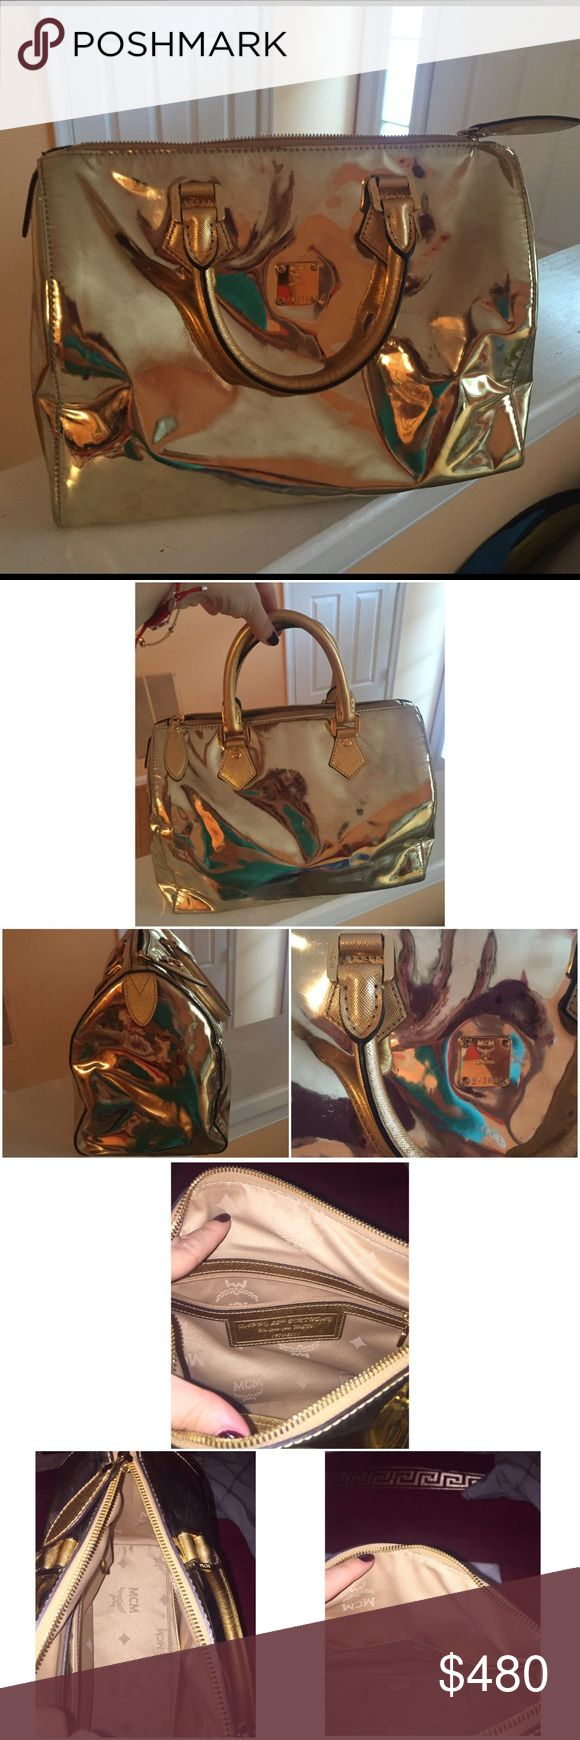 "MCM Gold Metallic Bag W 6"" x L 12"" x D 8"". Strap 4"" Does have some scratches but because of the shine of the bag they are not noticeable! Comes with dust bag. PRICE IS NEGOTIABLE BUT WITHING REASON! MCM Bags"